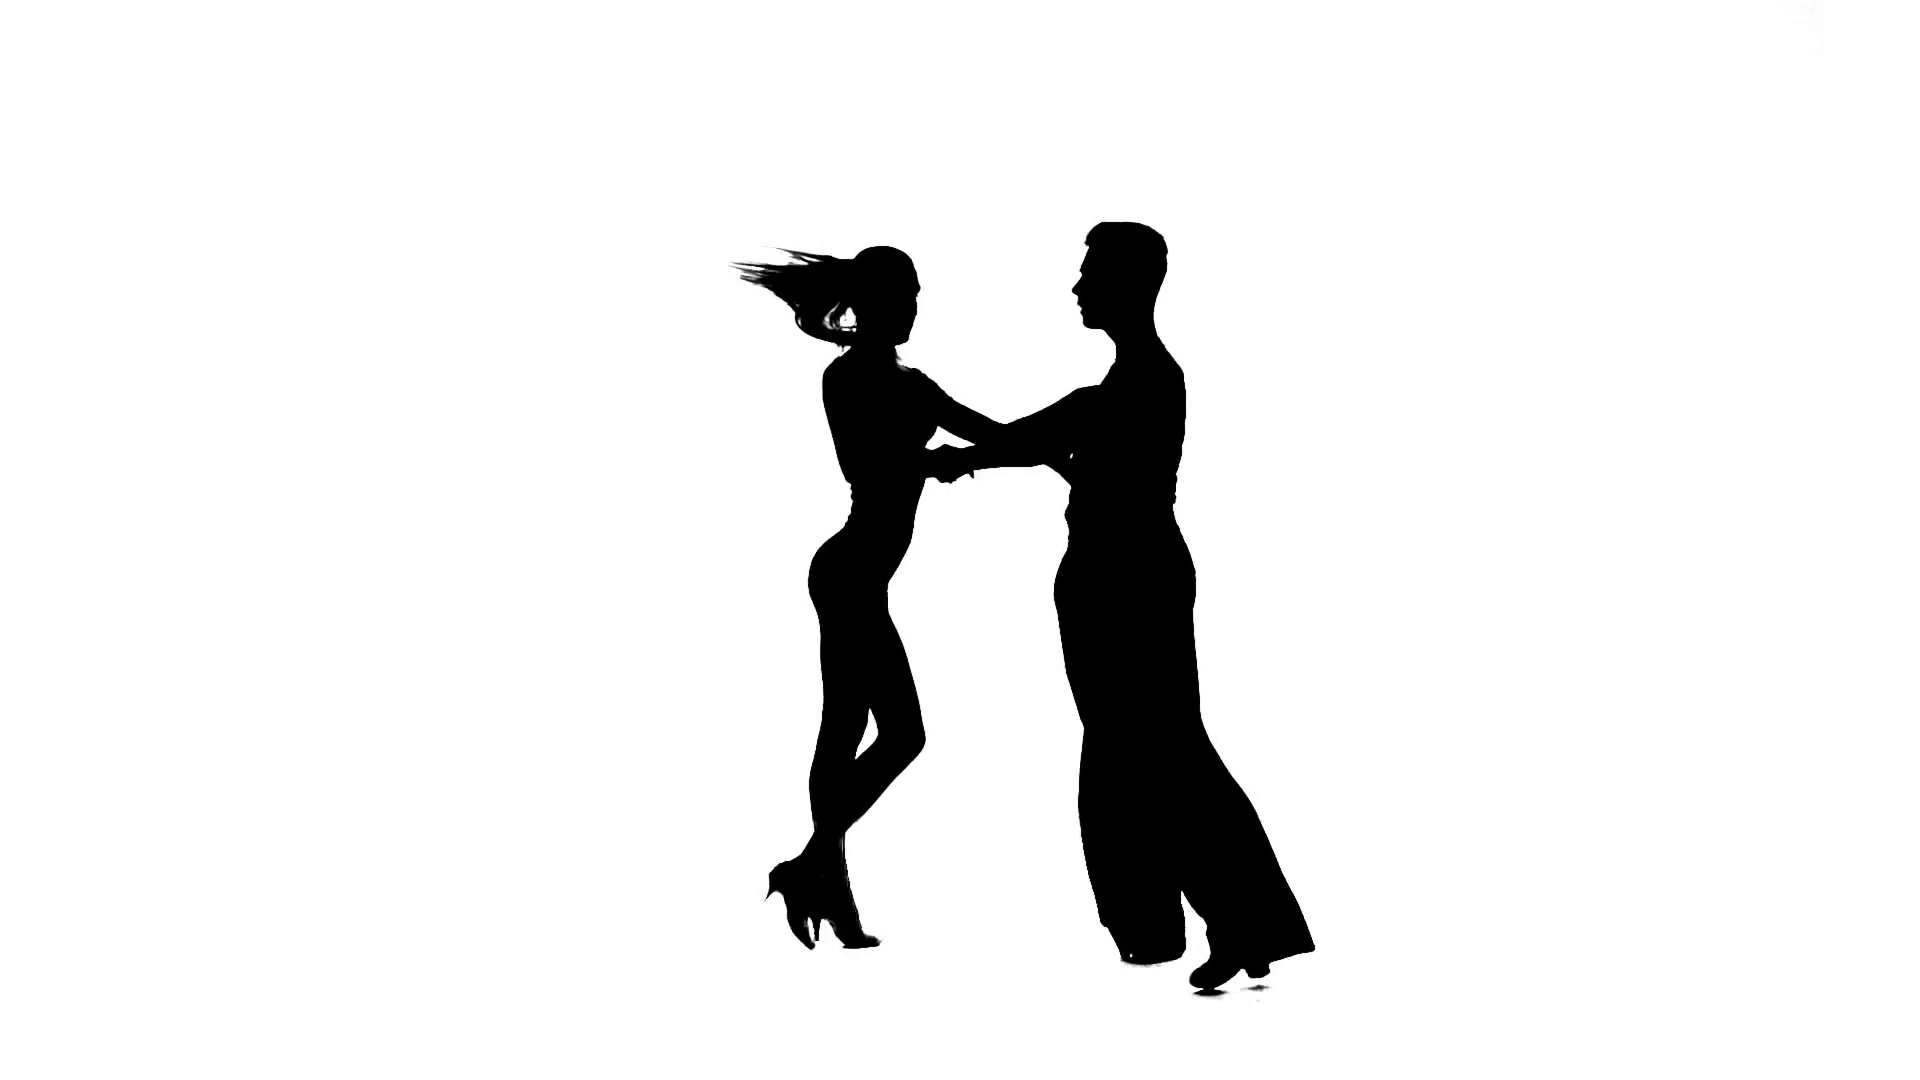 1920x1080 Silhouette Pair Dancers Perform Ballroom Dance, White Background